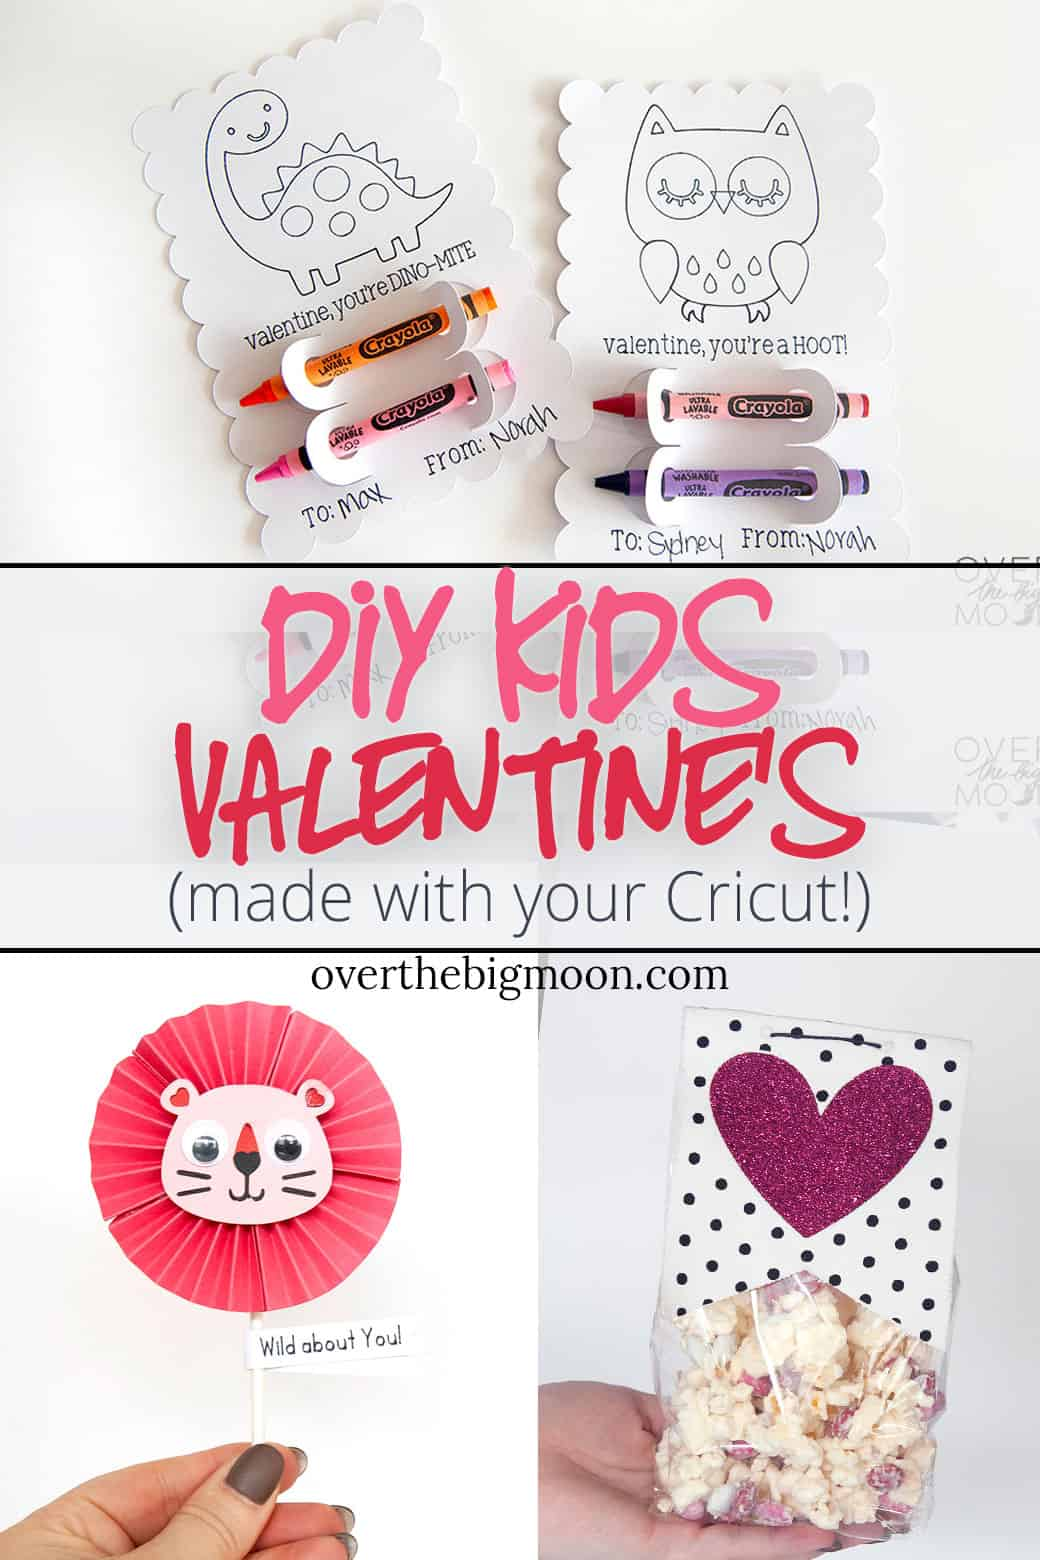 Come learn how to make these 3 fun Valentine's using your Cricut Maker! All are super fun and easy! From overthebigmoon.com!